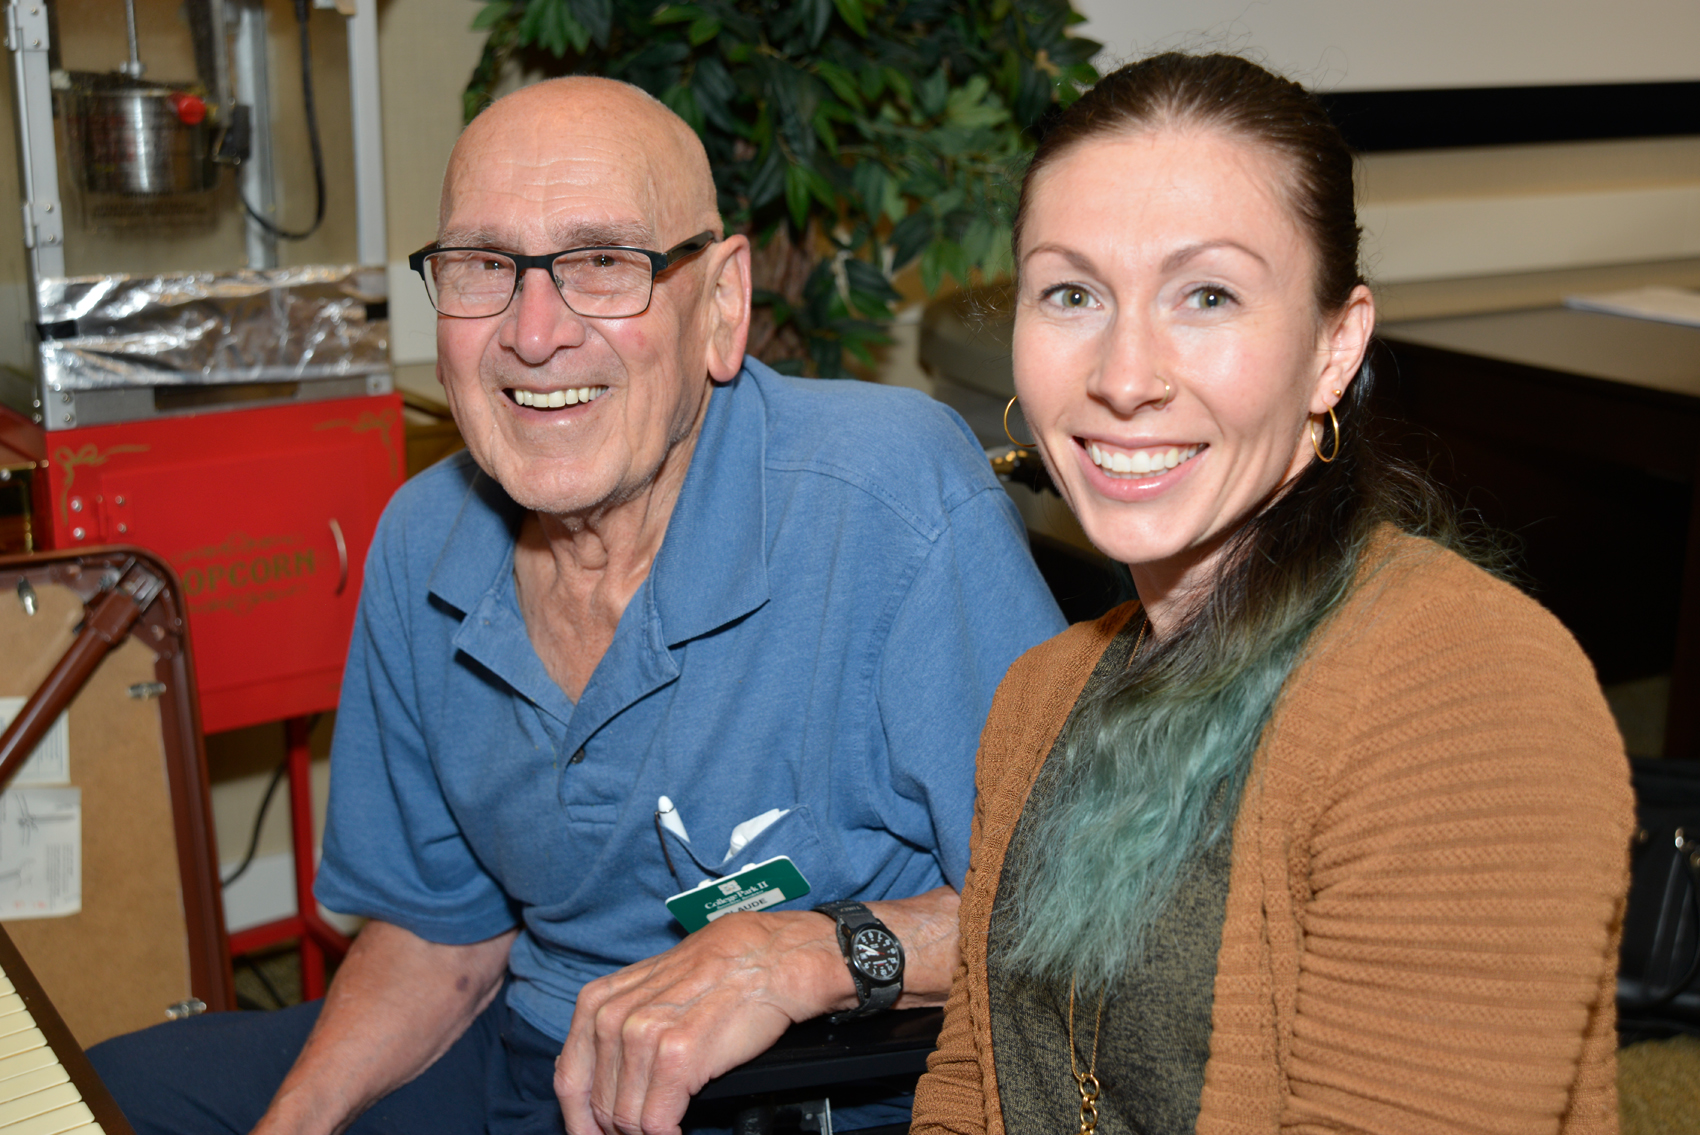 Mandy Ebel, a singer-songwriter, vocal coach, and music producer is one of the program volunteers. She regularly visits College Park II to help Claude Crozon learn and re-learn songs after a stroke and two mild heart attacks left him without memories. Photo by Don Hall